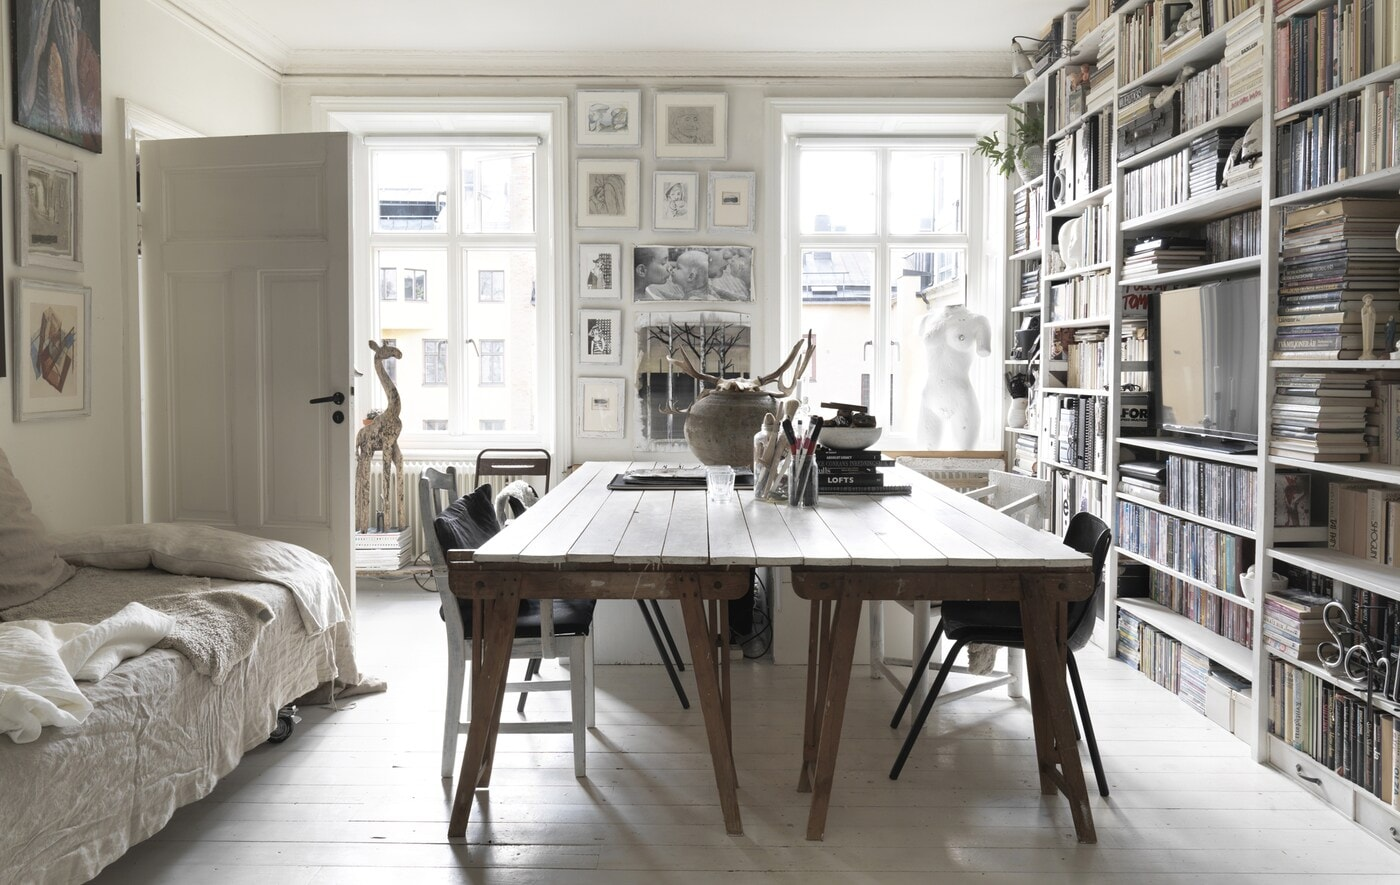 A large dining table and wall of bookshelves.